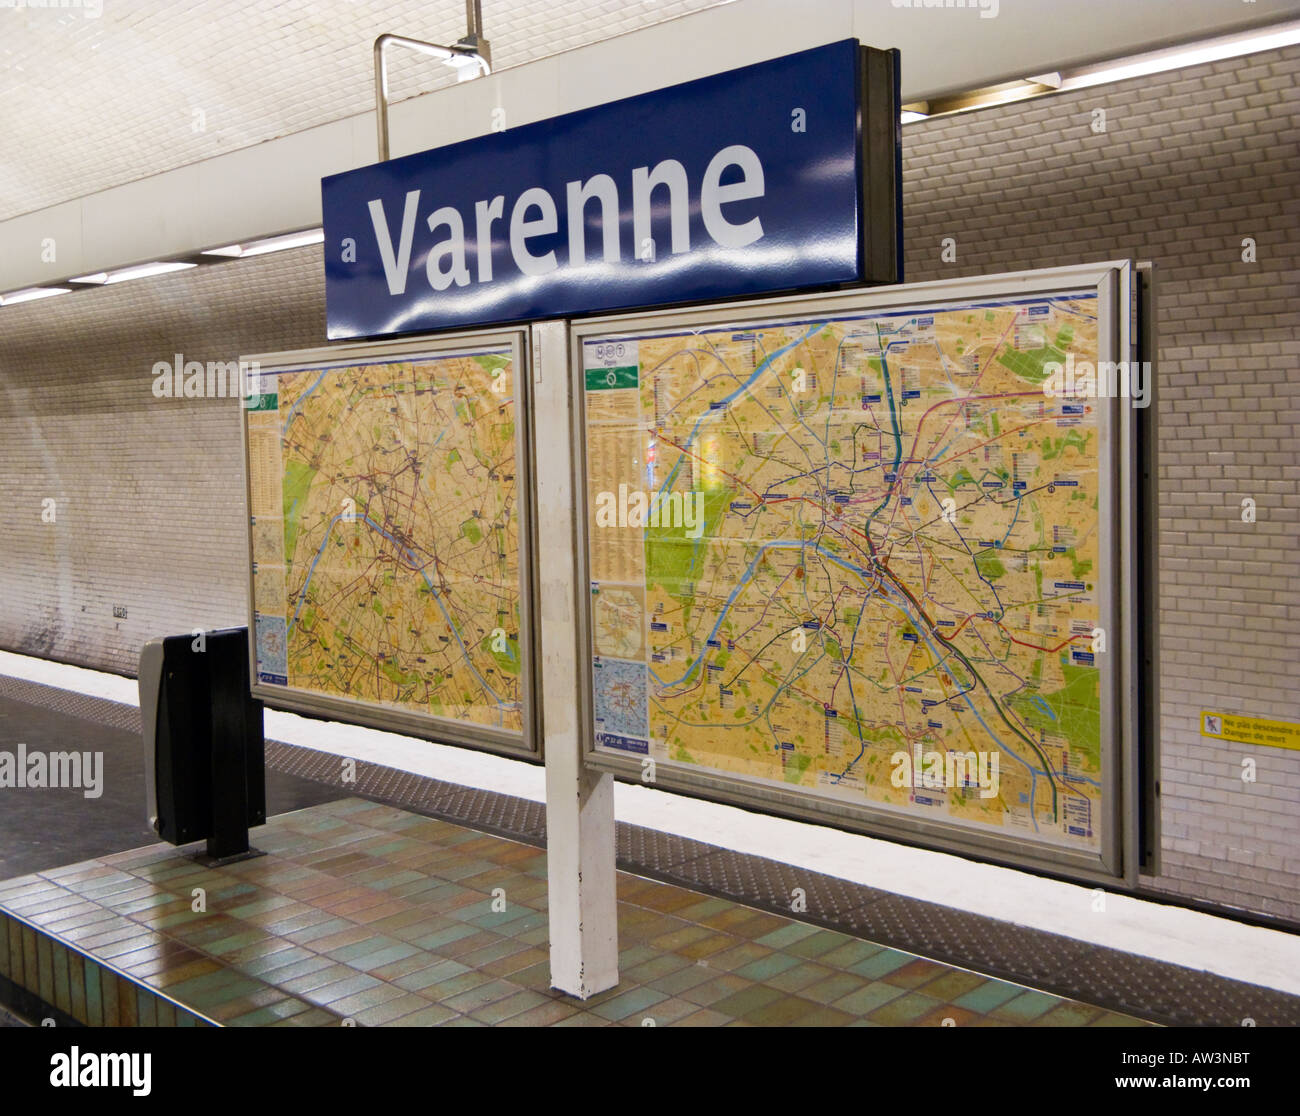 Paris Metro Station Sign And Map On The Subway Platform At Varenne - Paris metro station map